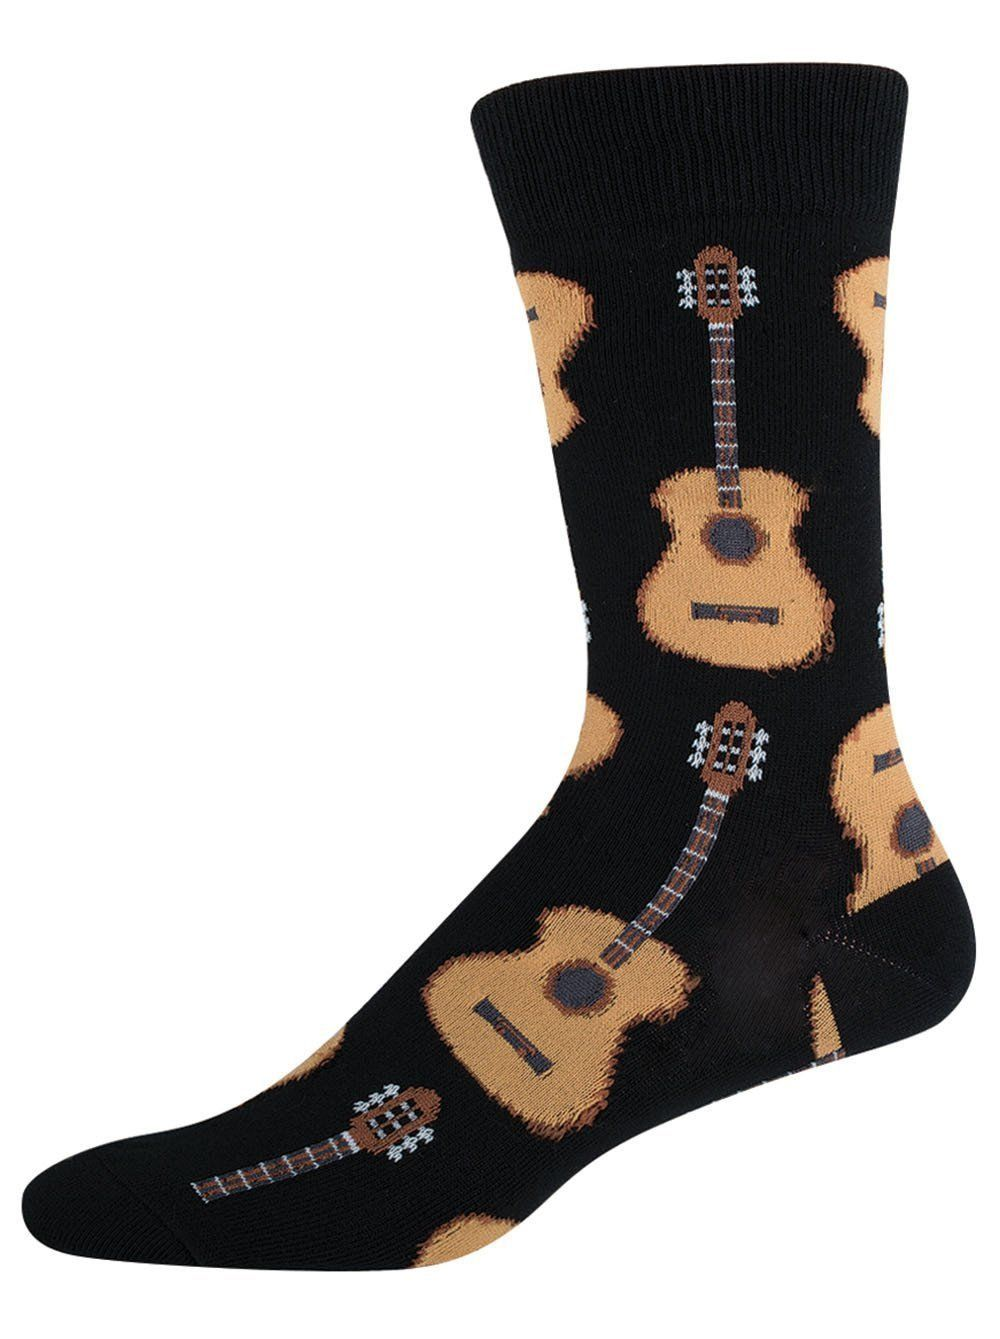 Socksmith - Guitars Crew Socks | Men's - Knock Your Socks Off